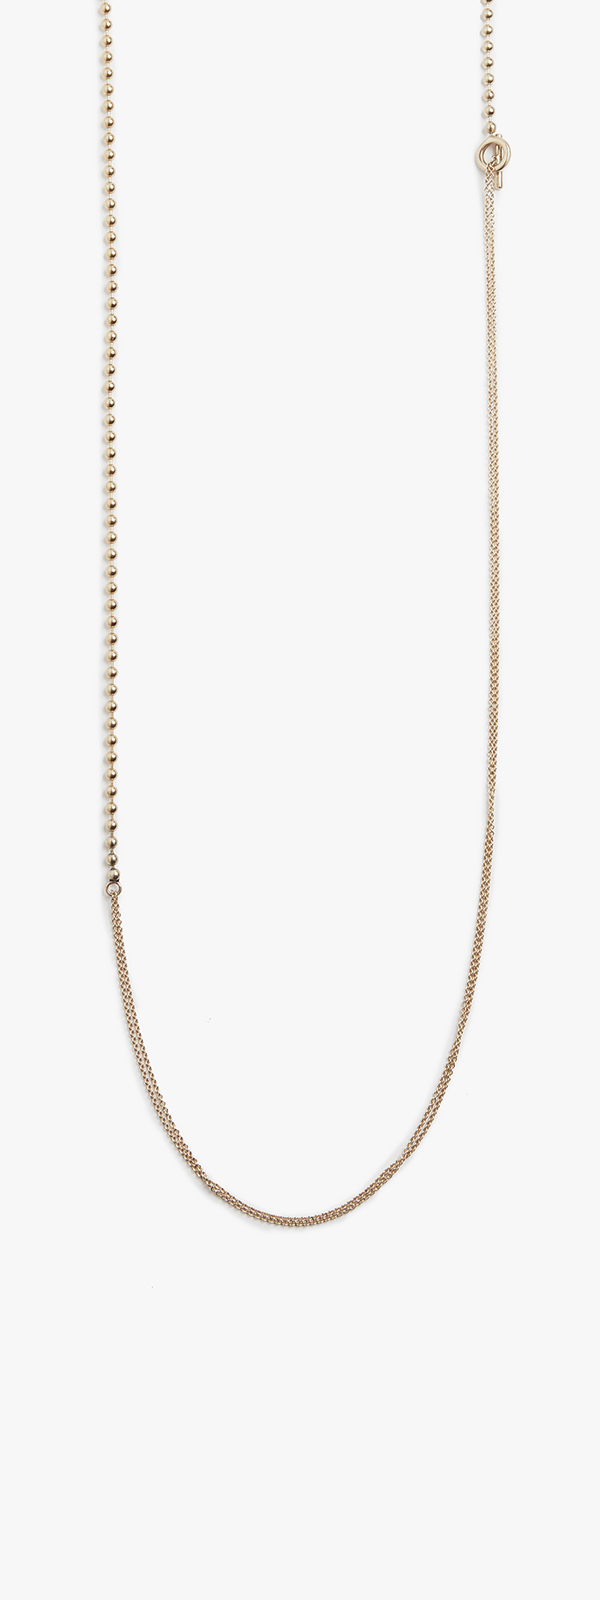 Image of Gold Ball Chain to Cable Necklace 059